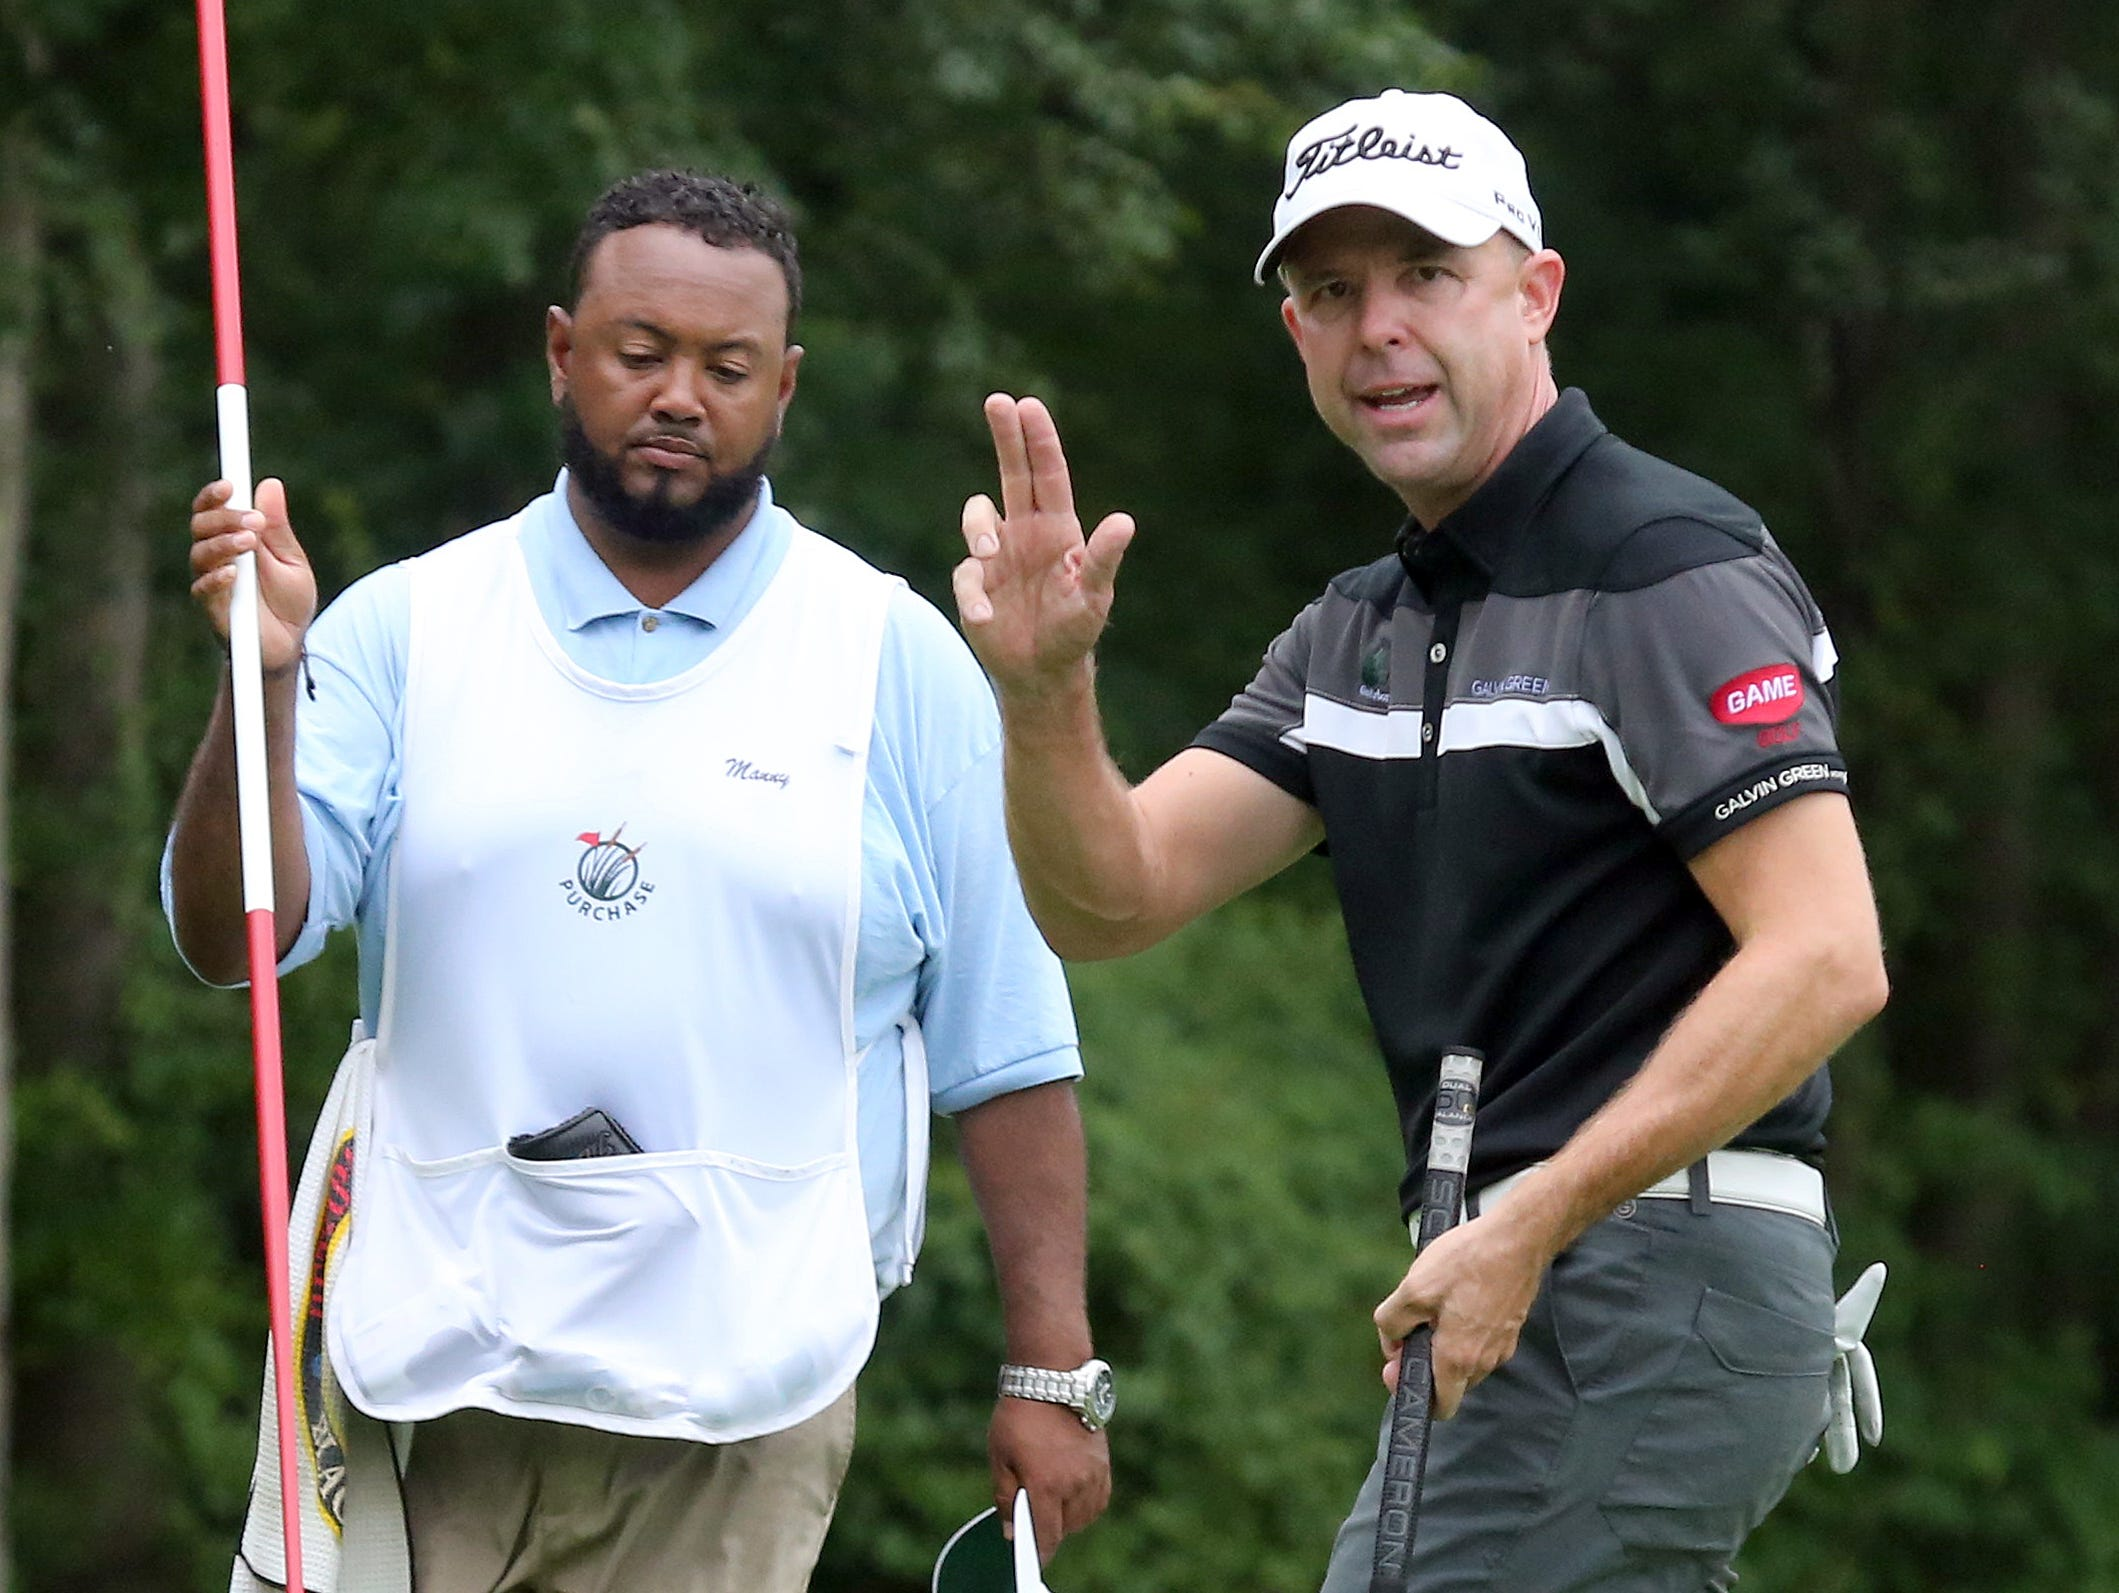 Rob Labritz from the GlenArbor Golf Club, acknowledges applause after sinking his final putt, during the Metropolitan Professional Championship at the Golf Club of Purchase, Aug. 10, 2016. Labritz won the event.